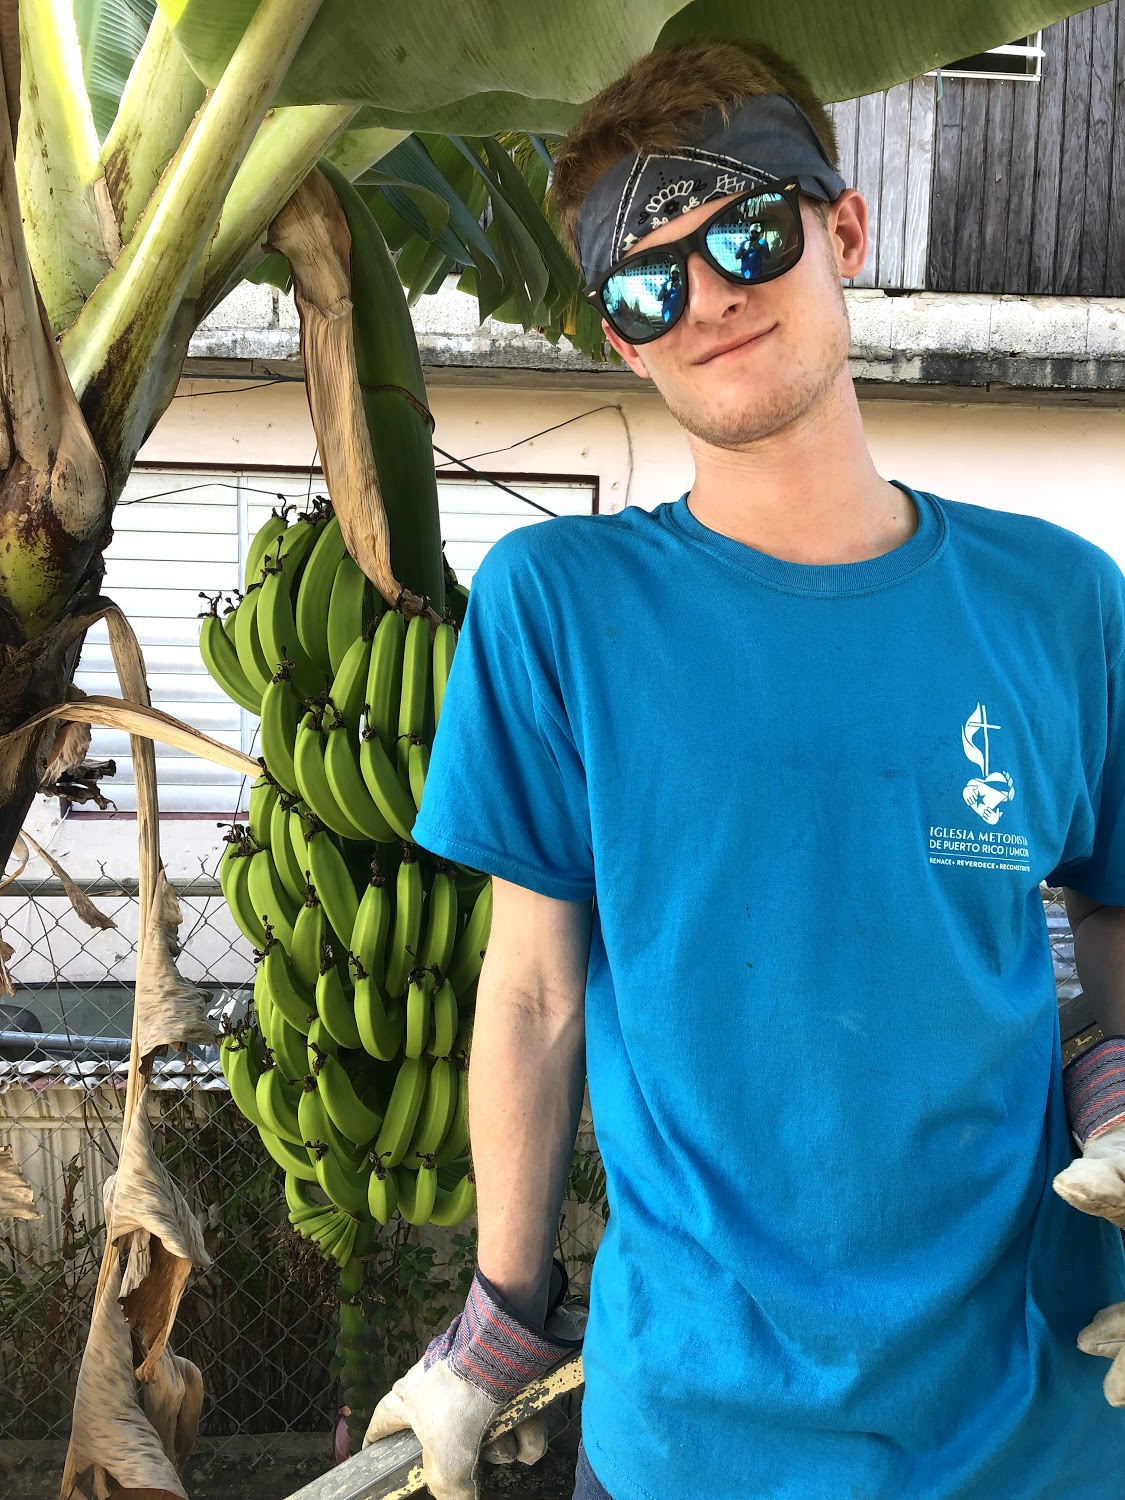 Richard White poses by a banana tree that was in the homeowner's backyard. Photo creds to JT Mercer